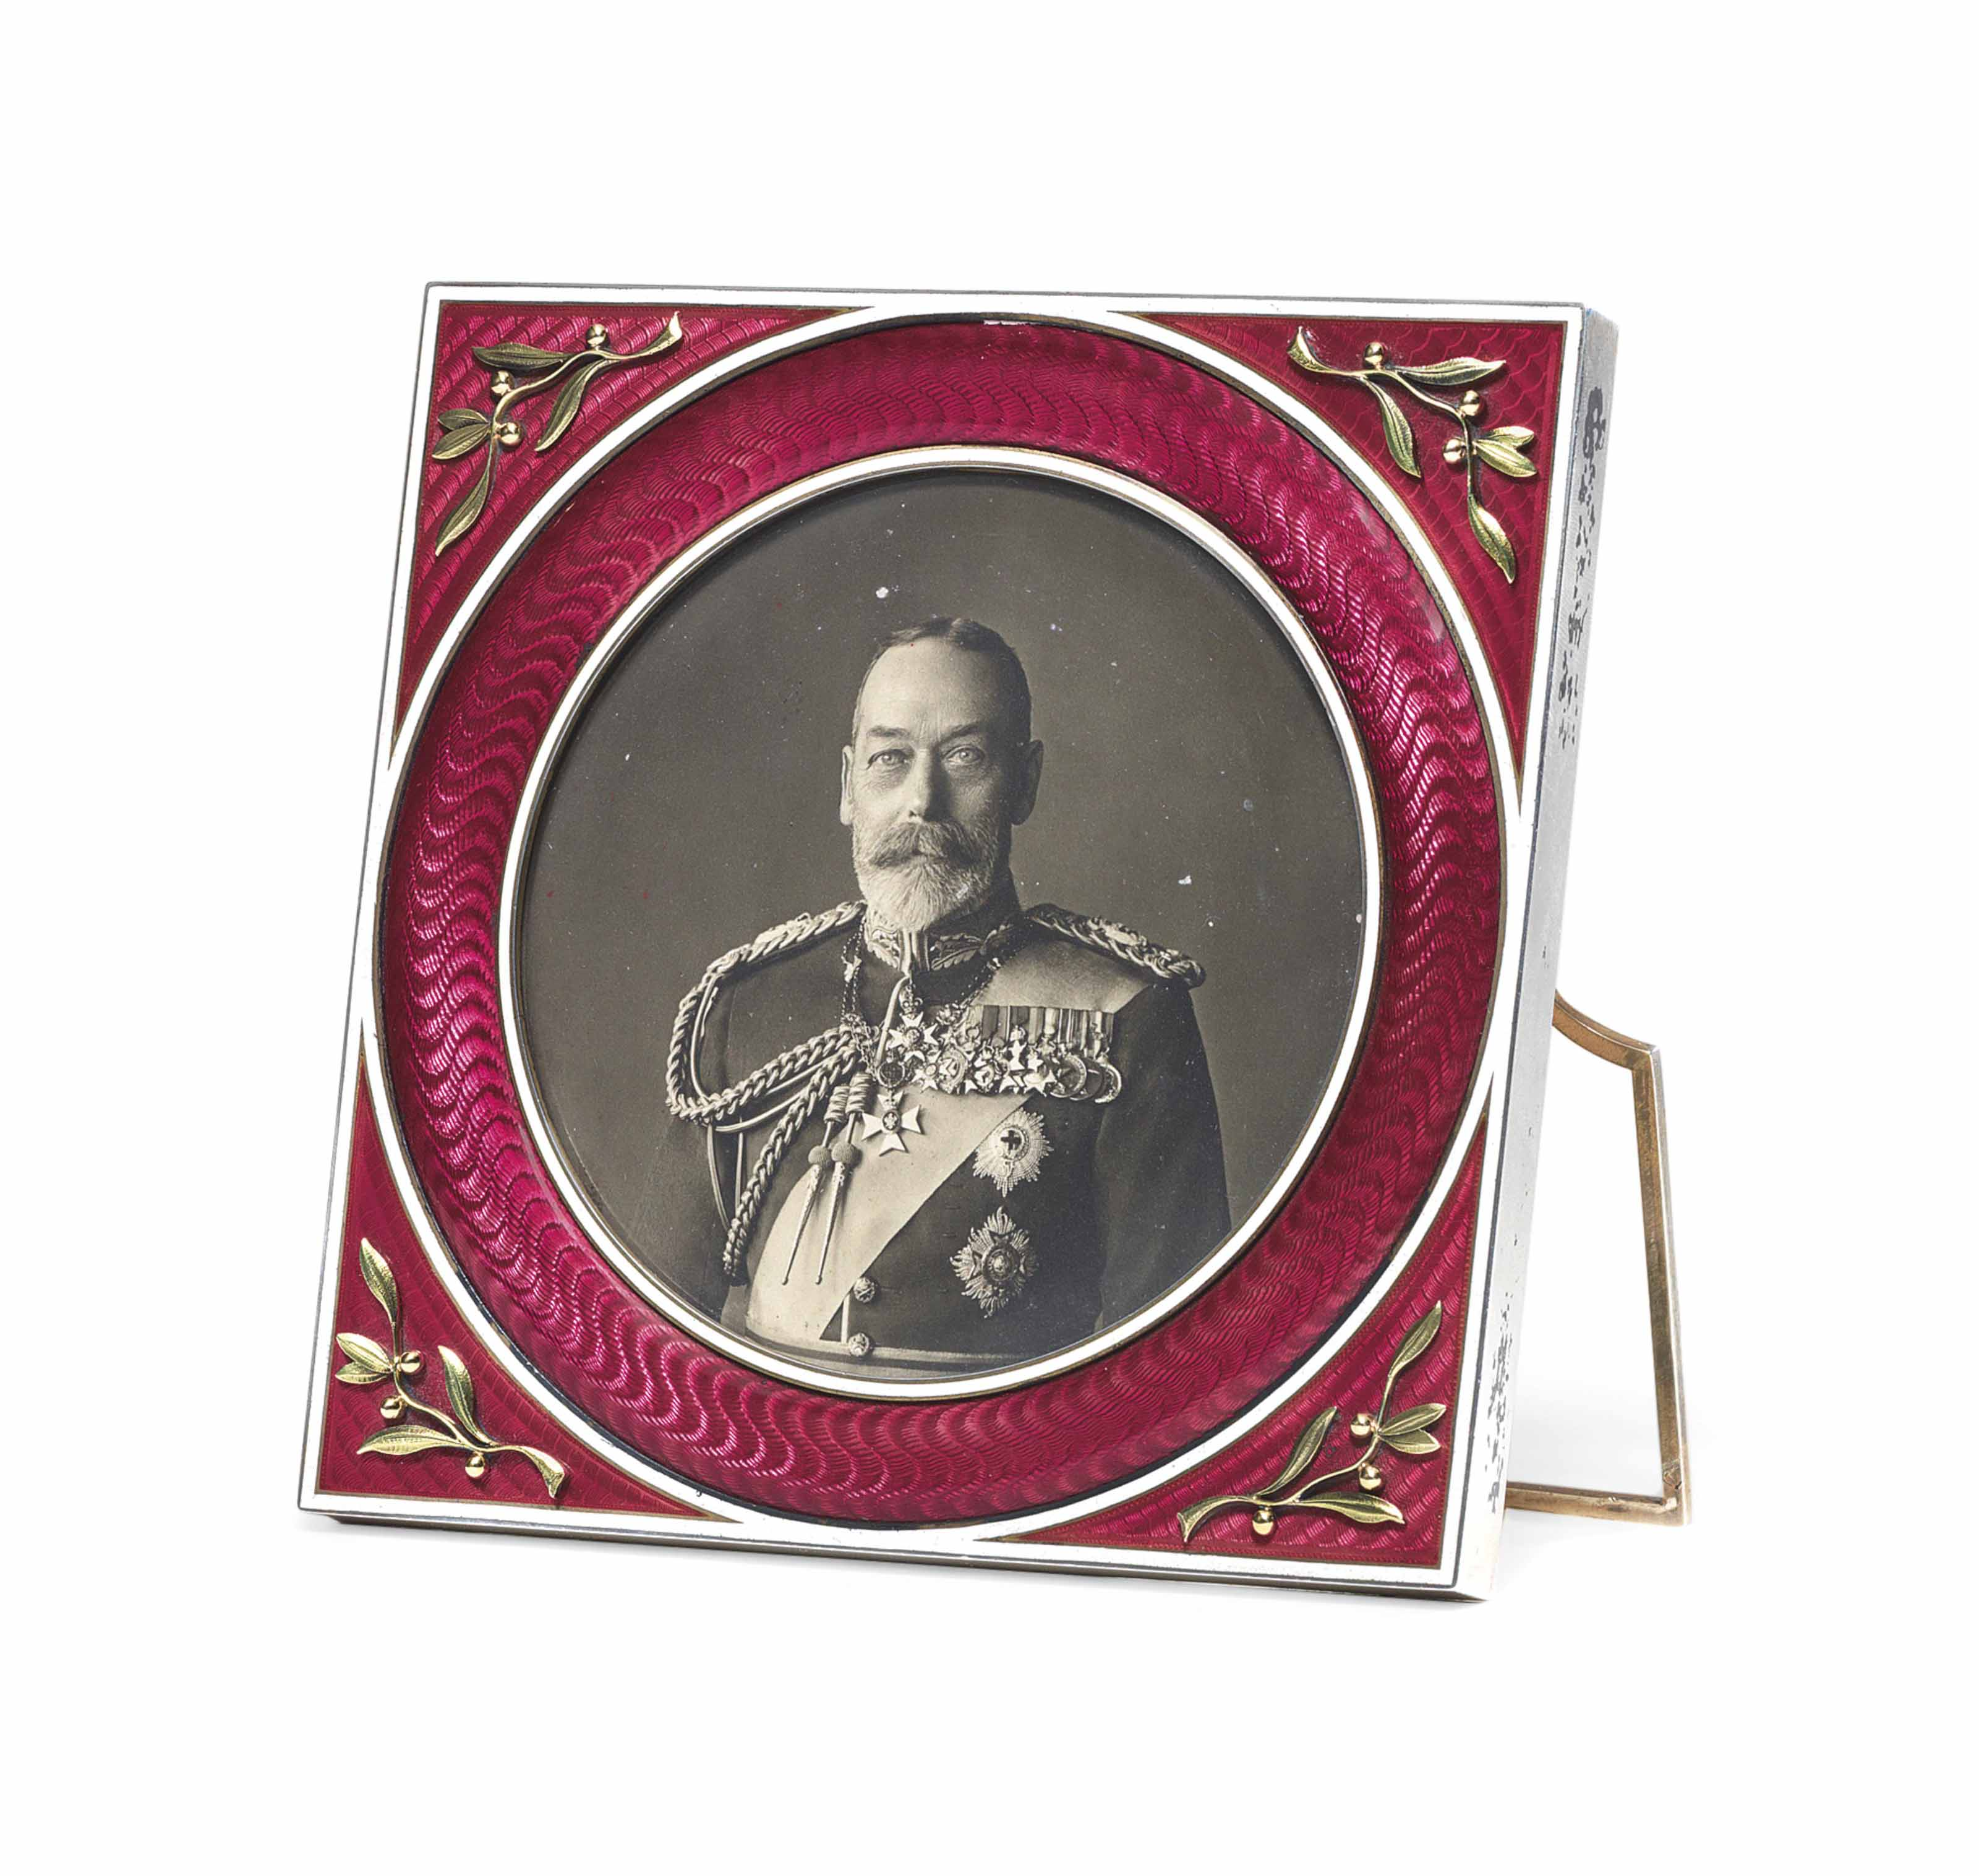 A PARCEL-GILT SILVER-MOUNTED AND GUILLOCHÉ ENAMEL PHOTOGRAPH FRAME